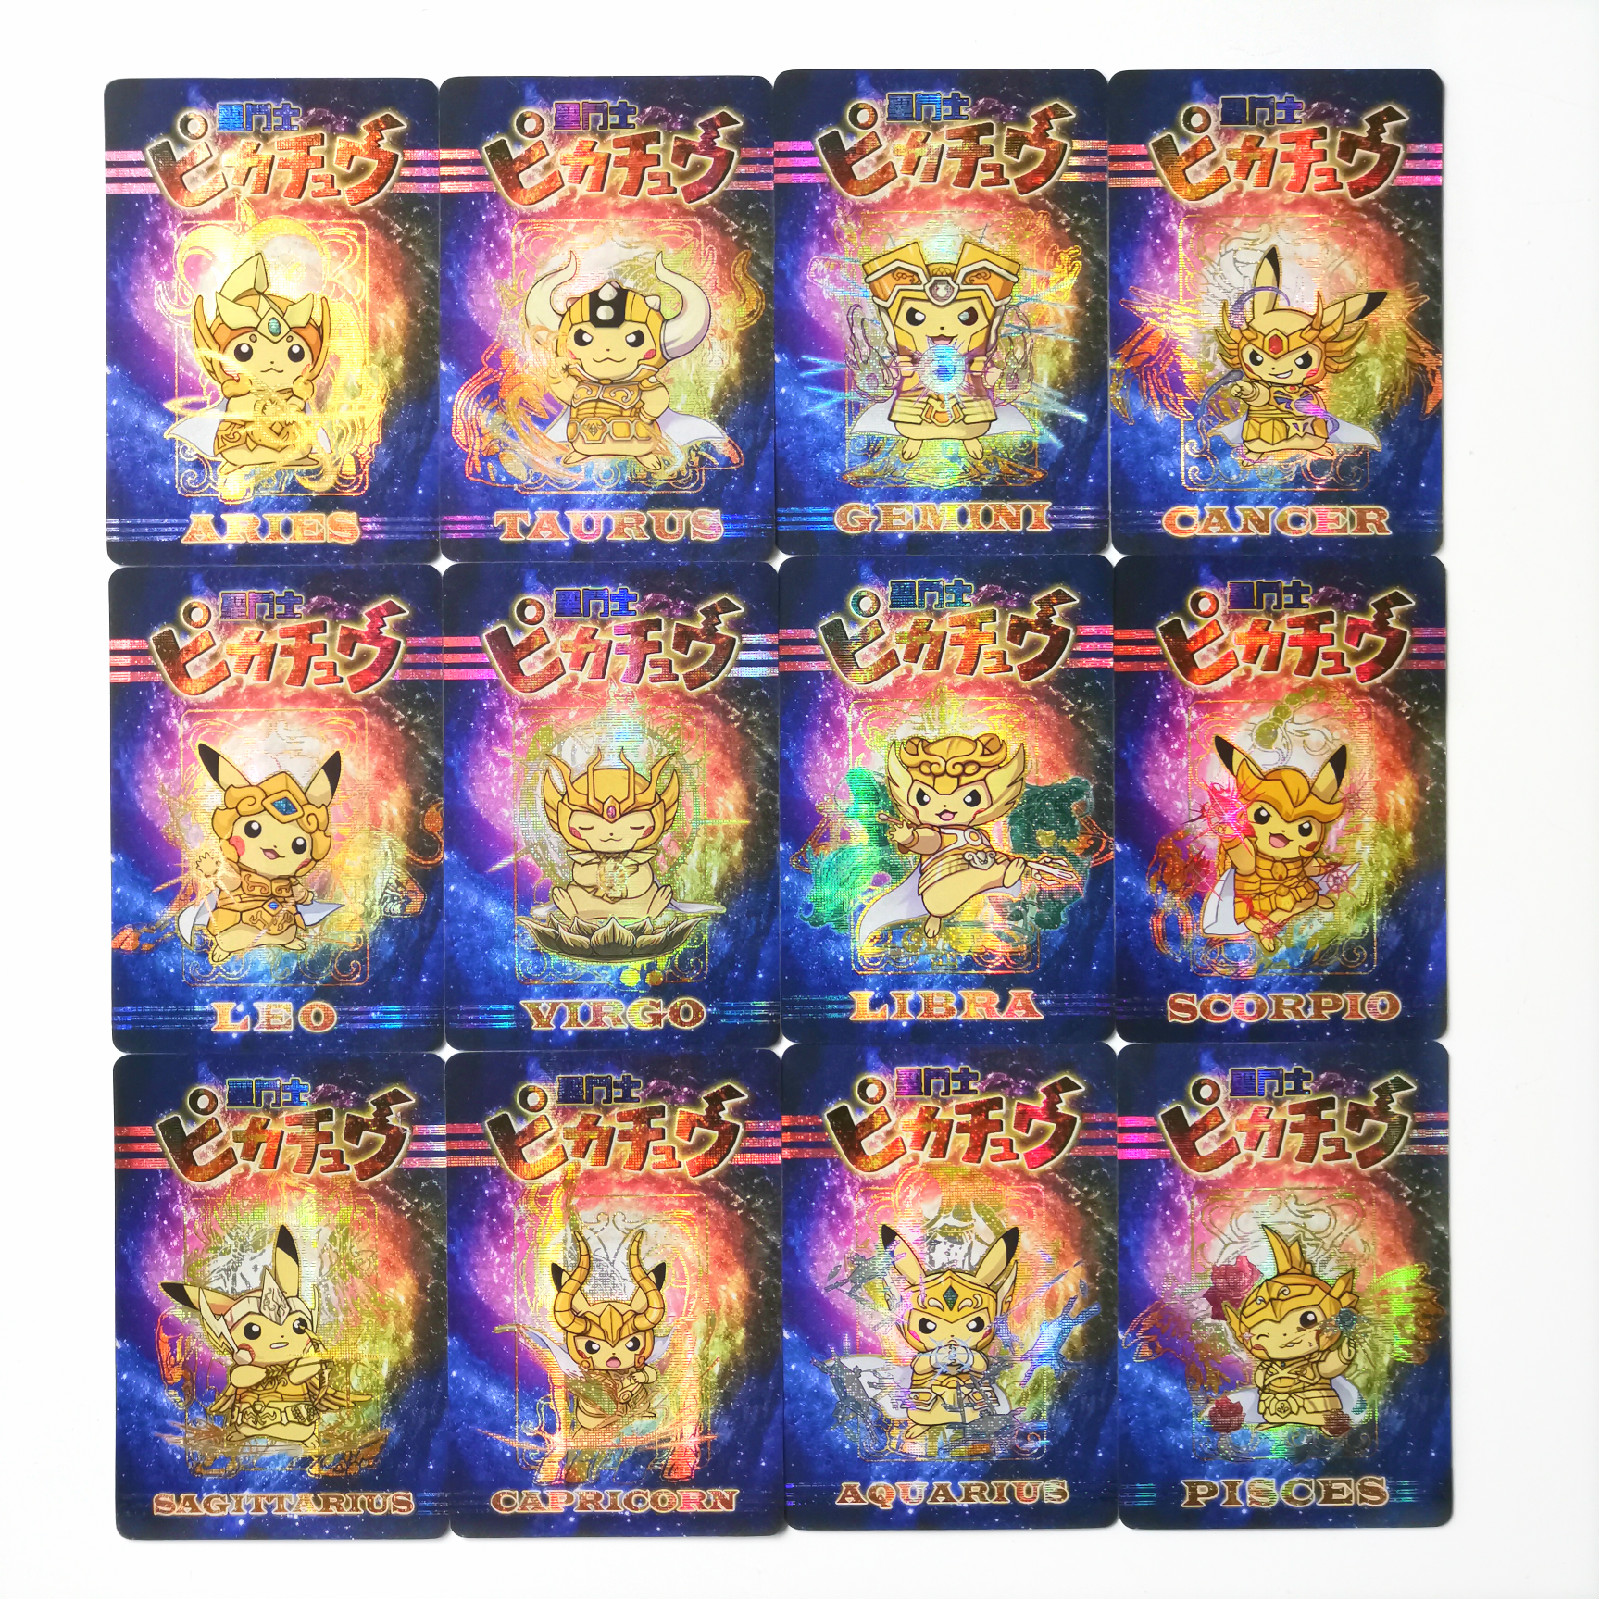 13pcs/set Pokemon Pikachu COS Saint Seiya TAKARA TOMY Toys Hobbies Hobby Collectibles Game Collection Anime Cards For Children